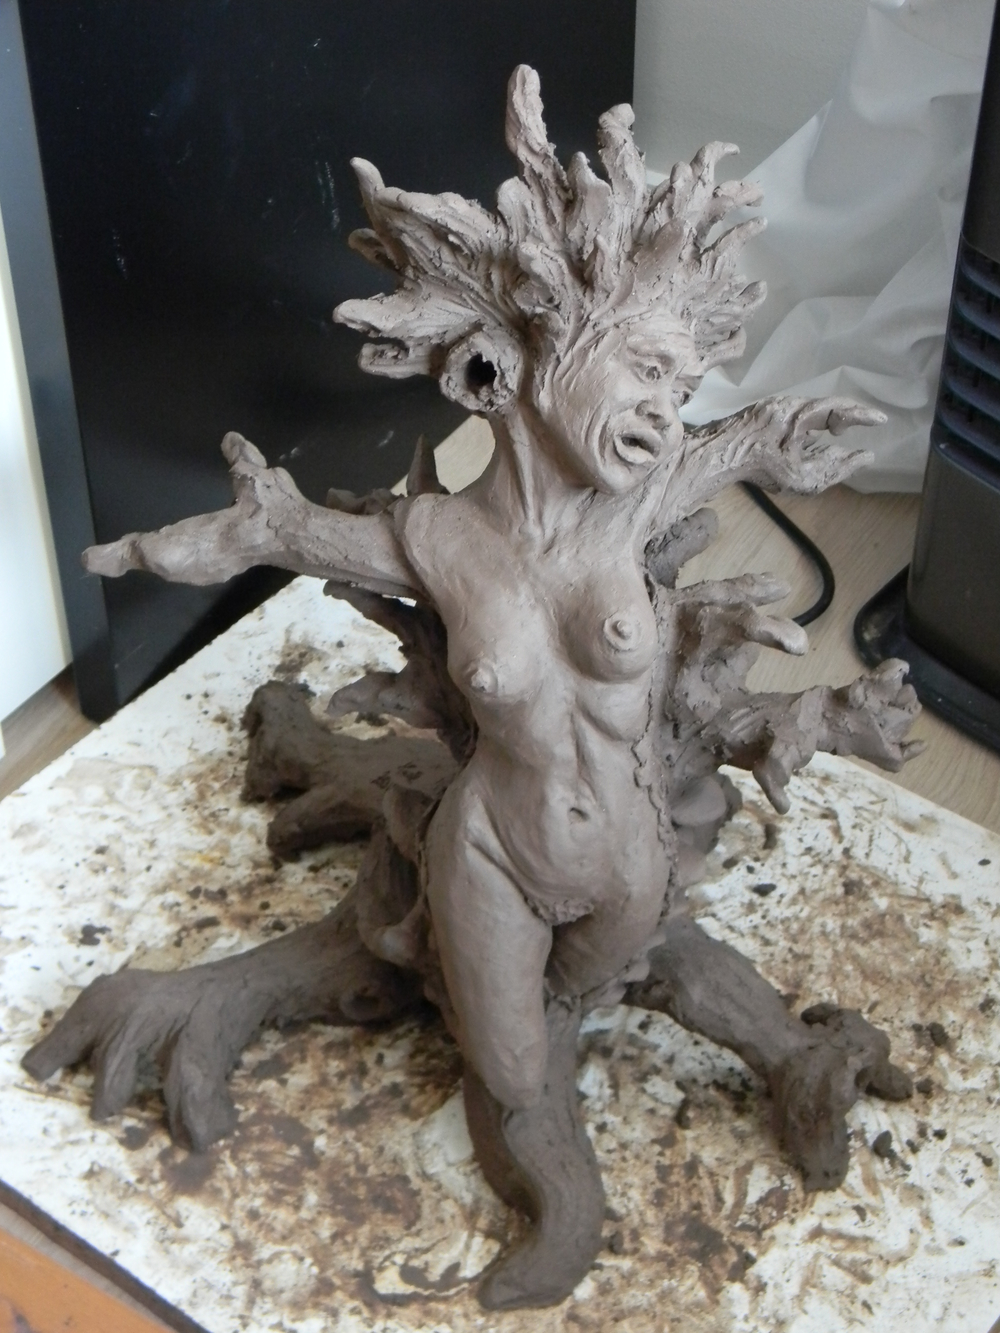 A tortured Dryad